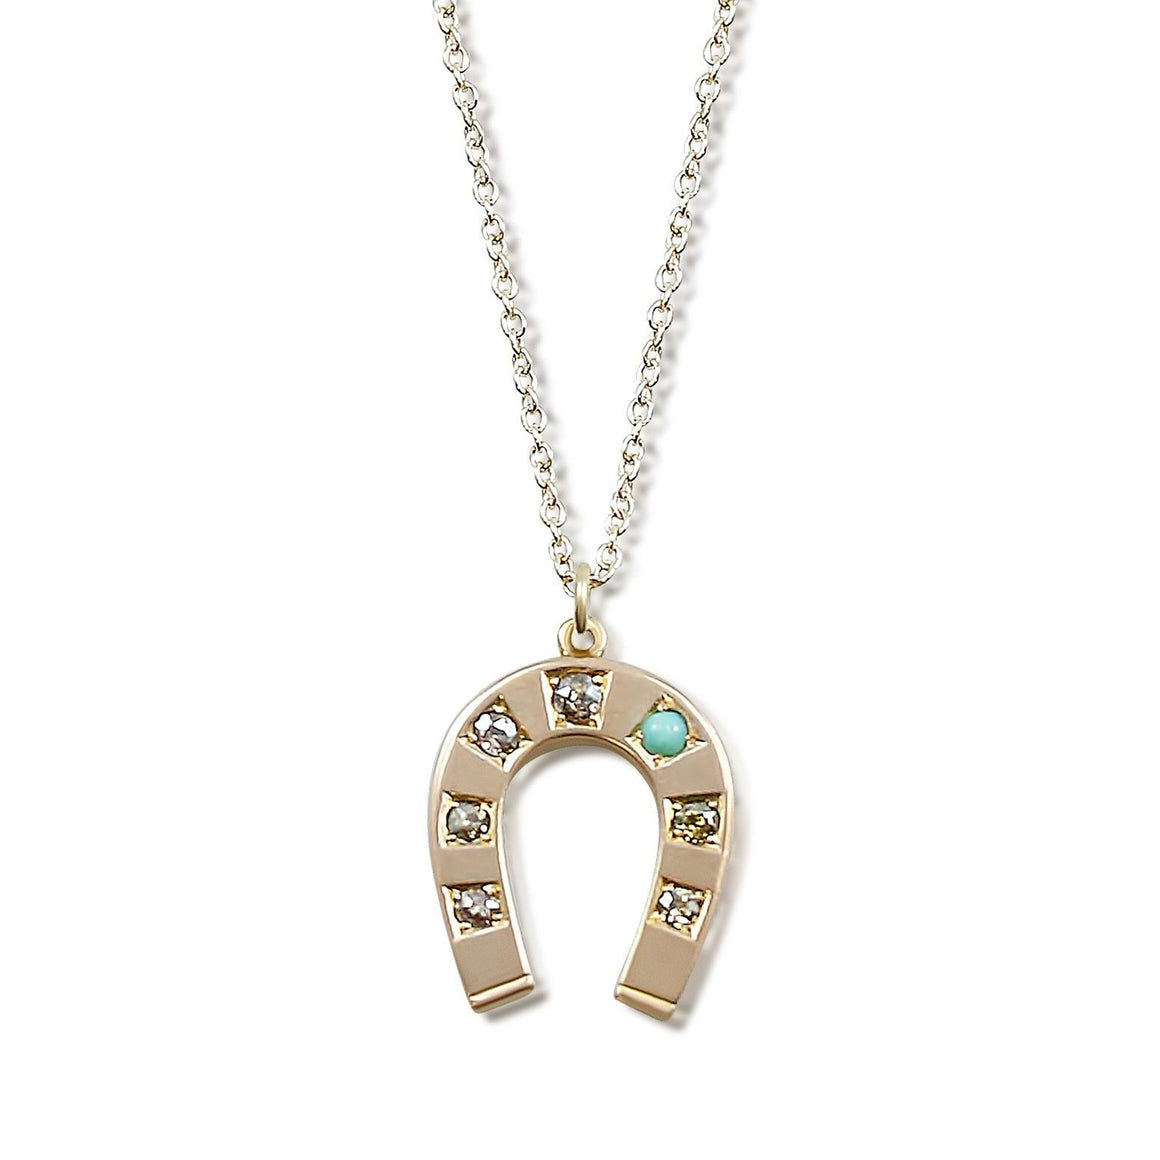 10k yellow gold victorian horse shoe pendant with old mine cut diamonds and a turquoise stone